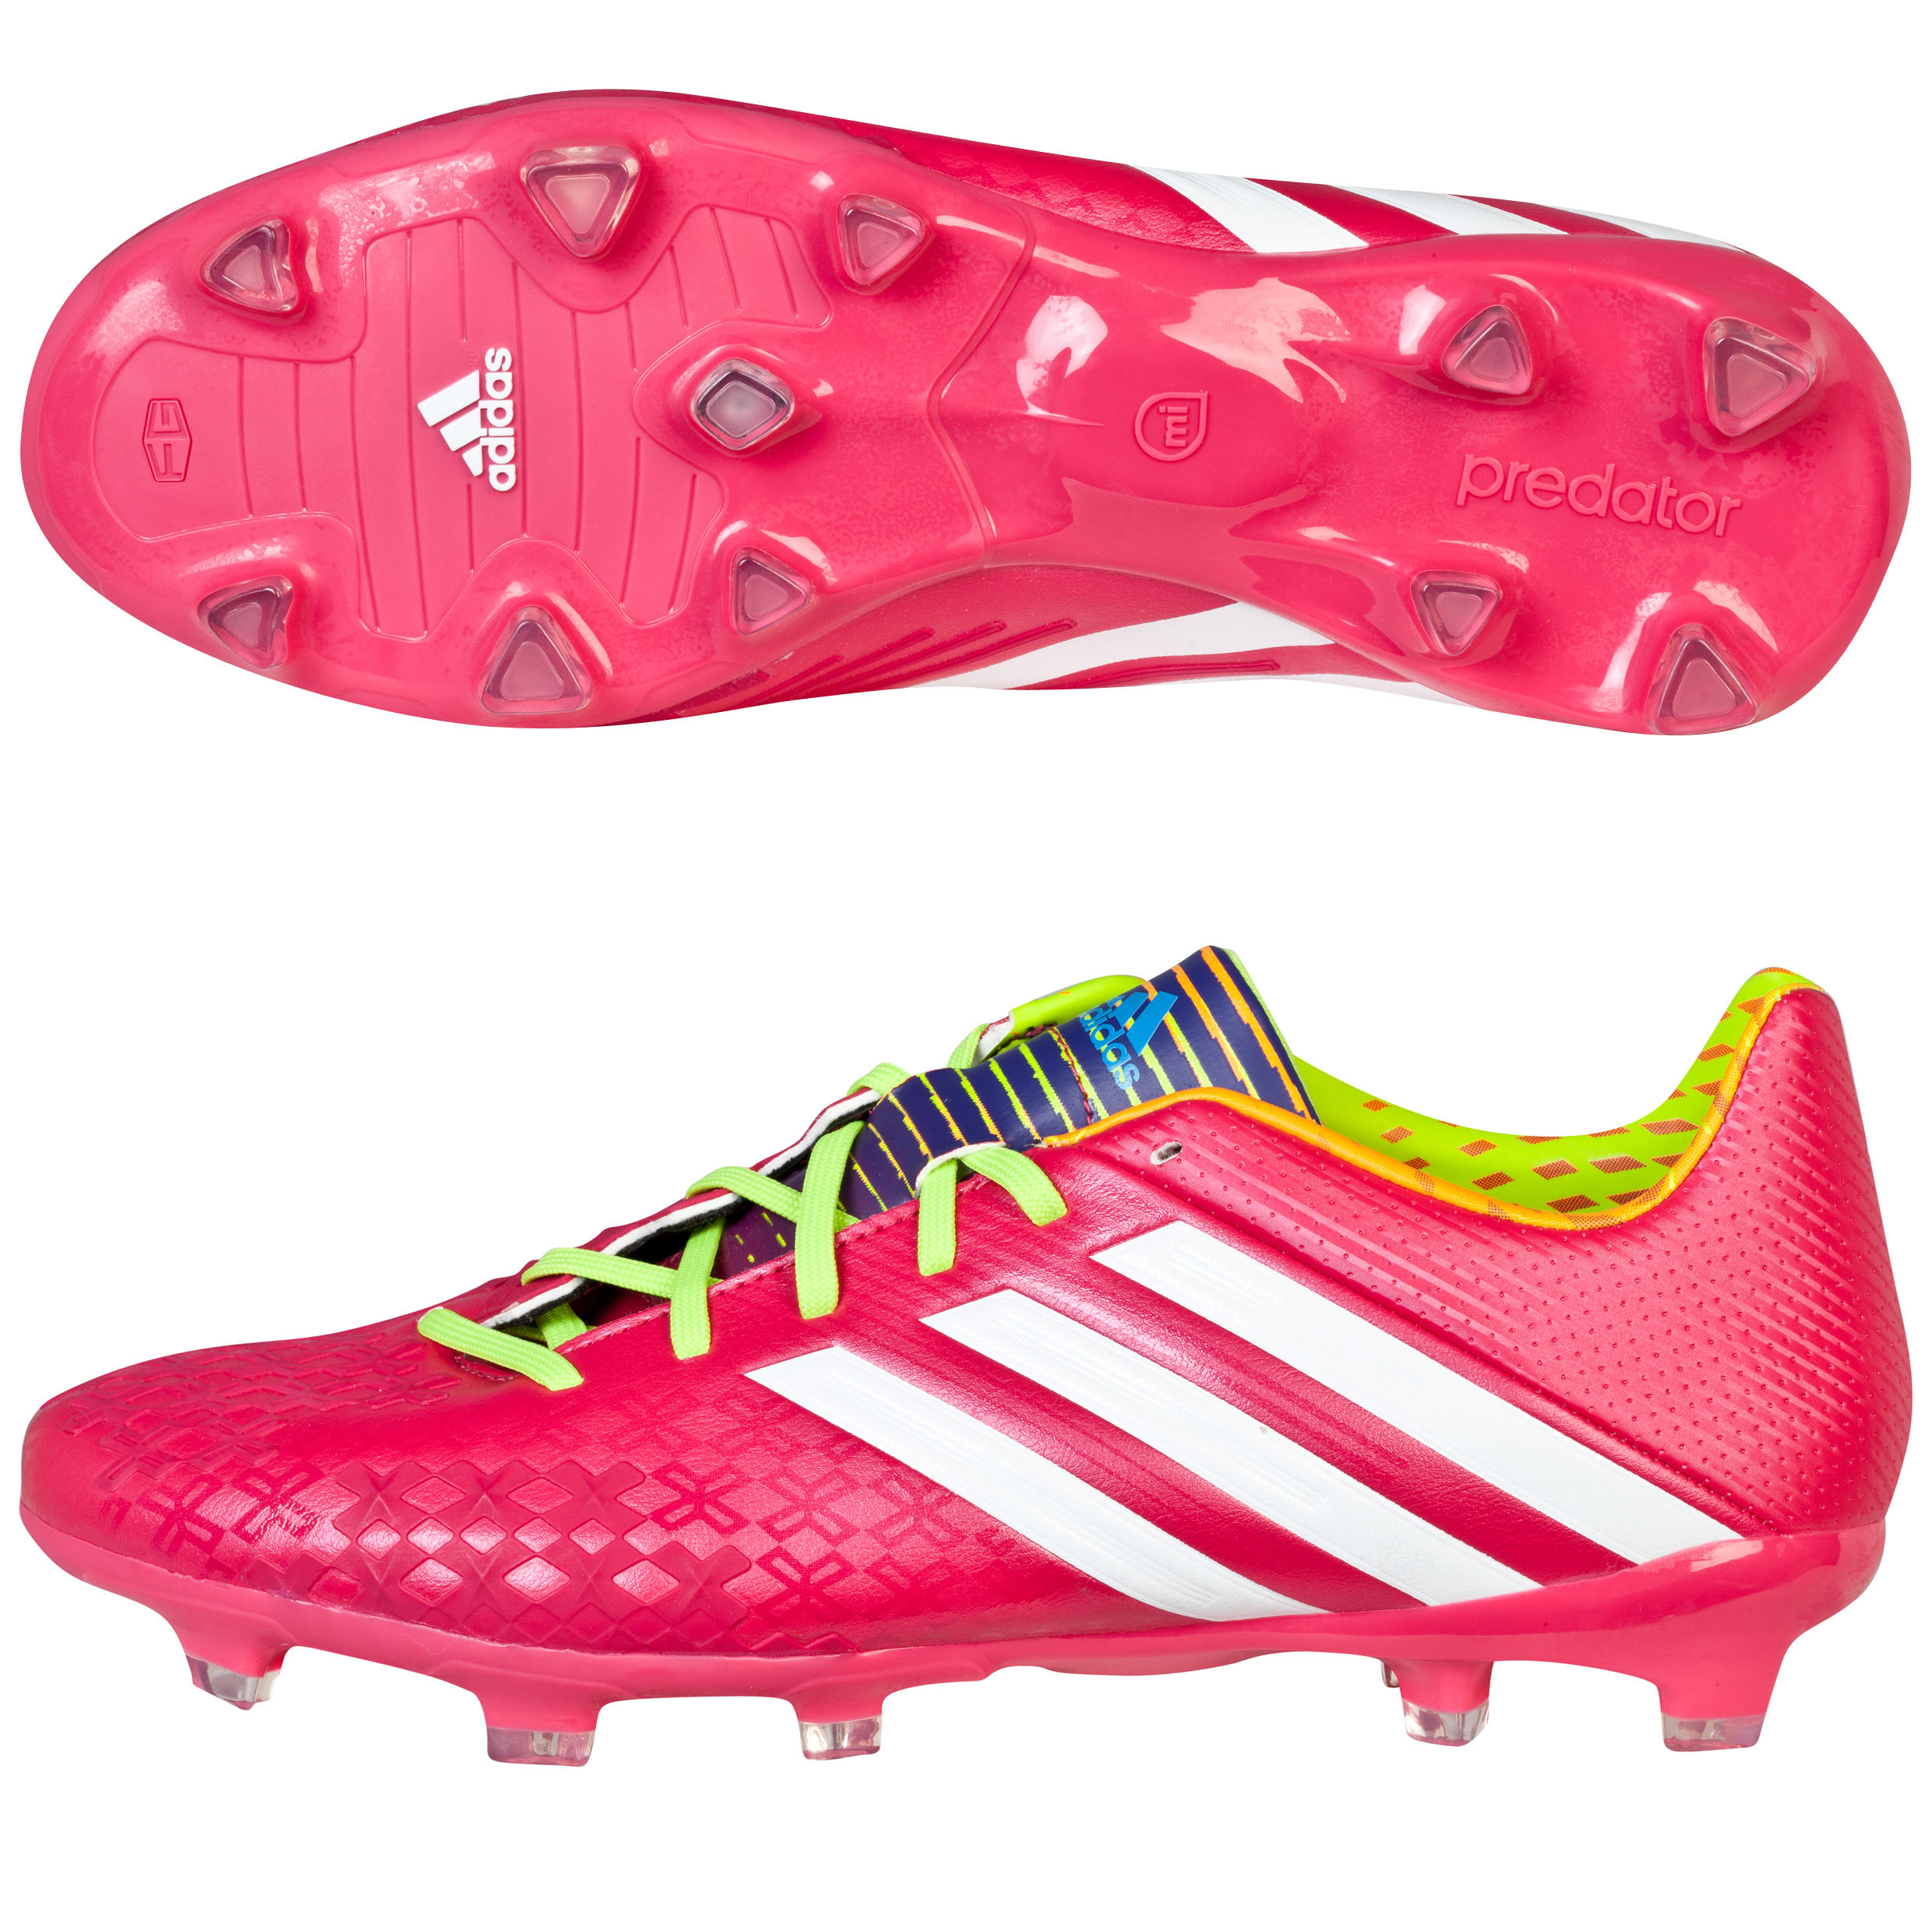 Adidas Predator Absolion LZ TRX Firm Ground Football Boots Pink